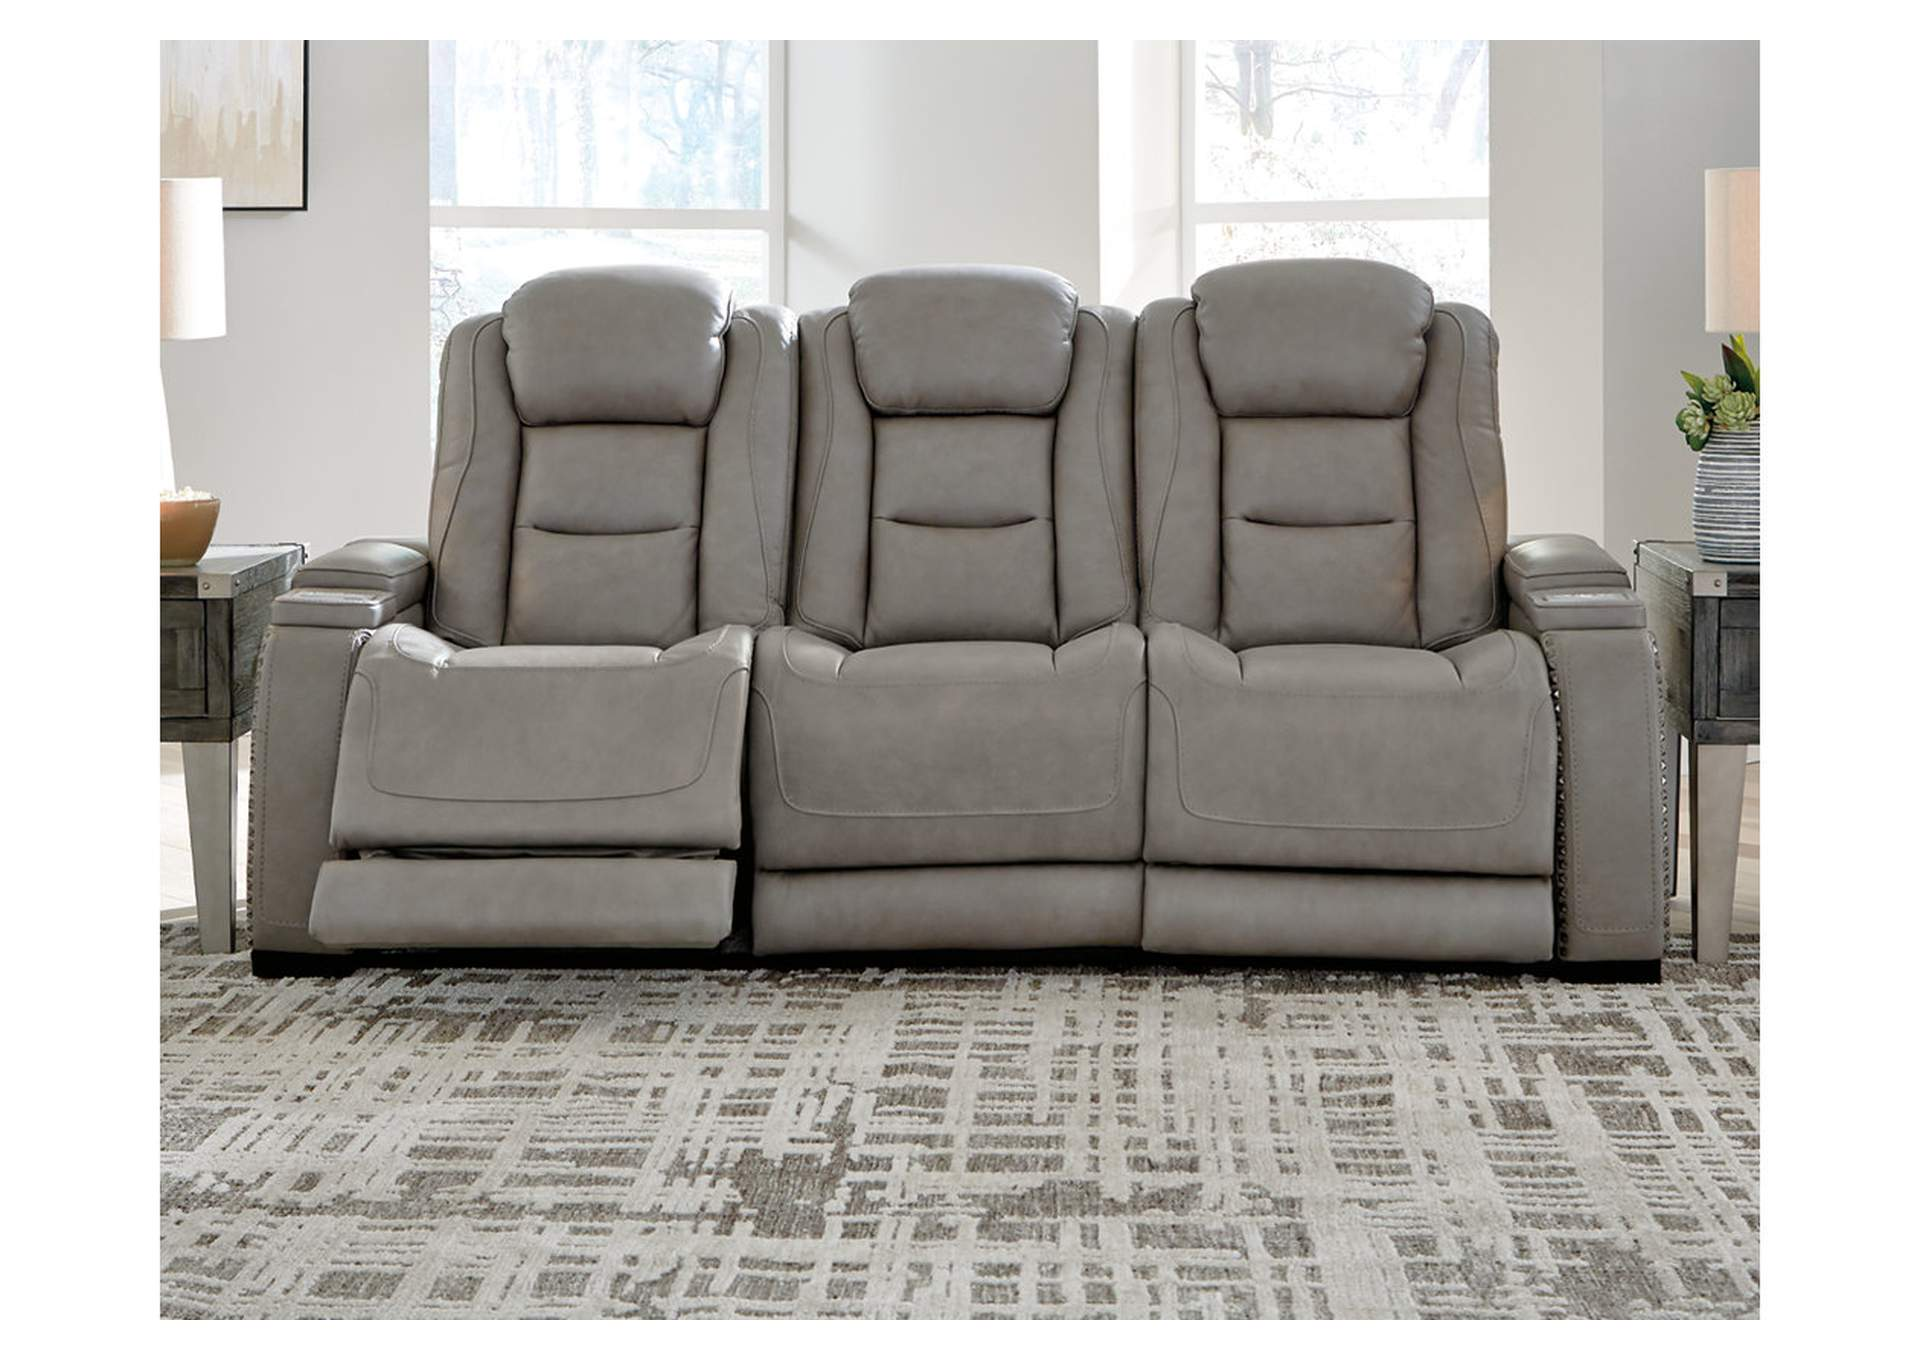 The Man-Den Gray Power Reclining Sofa,Signature Design By Ashley